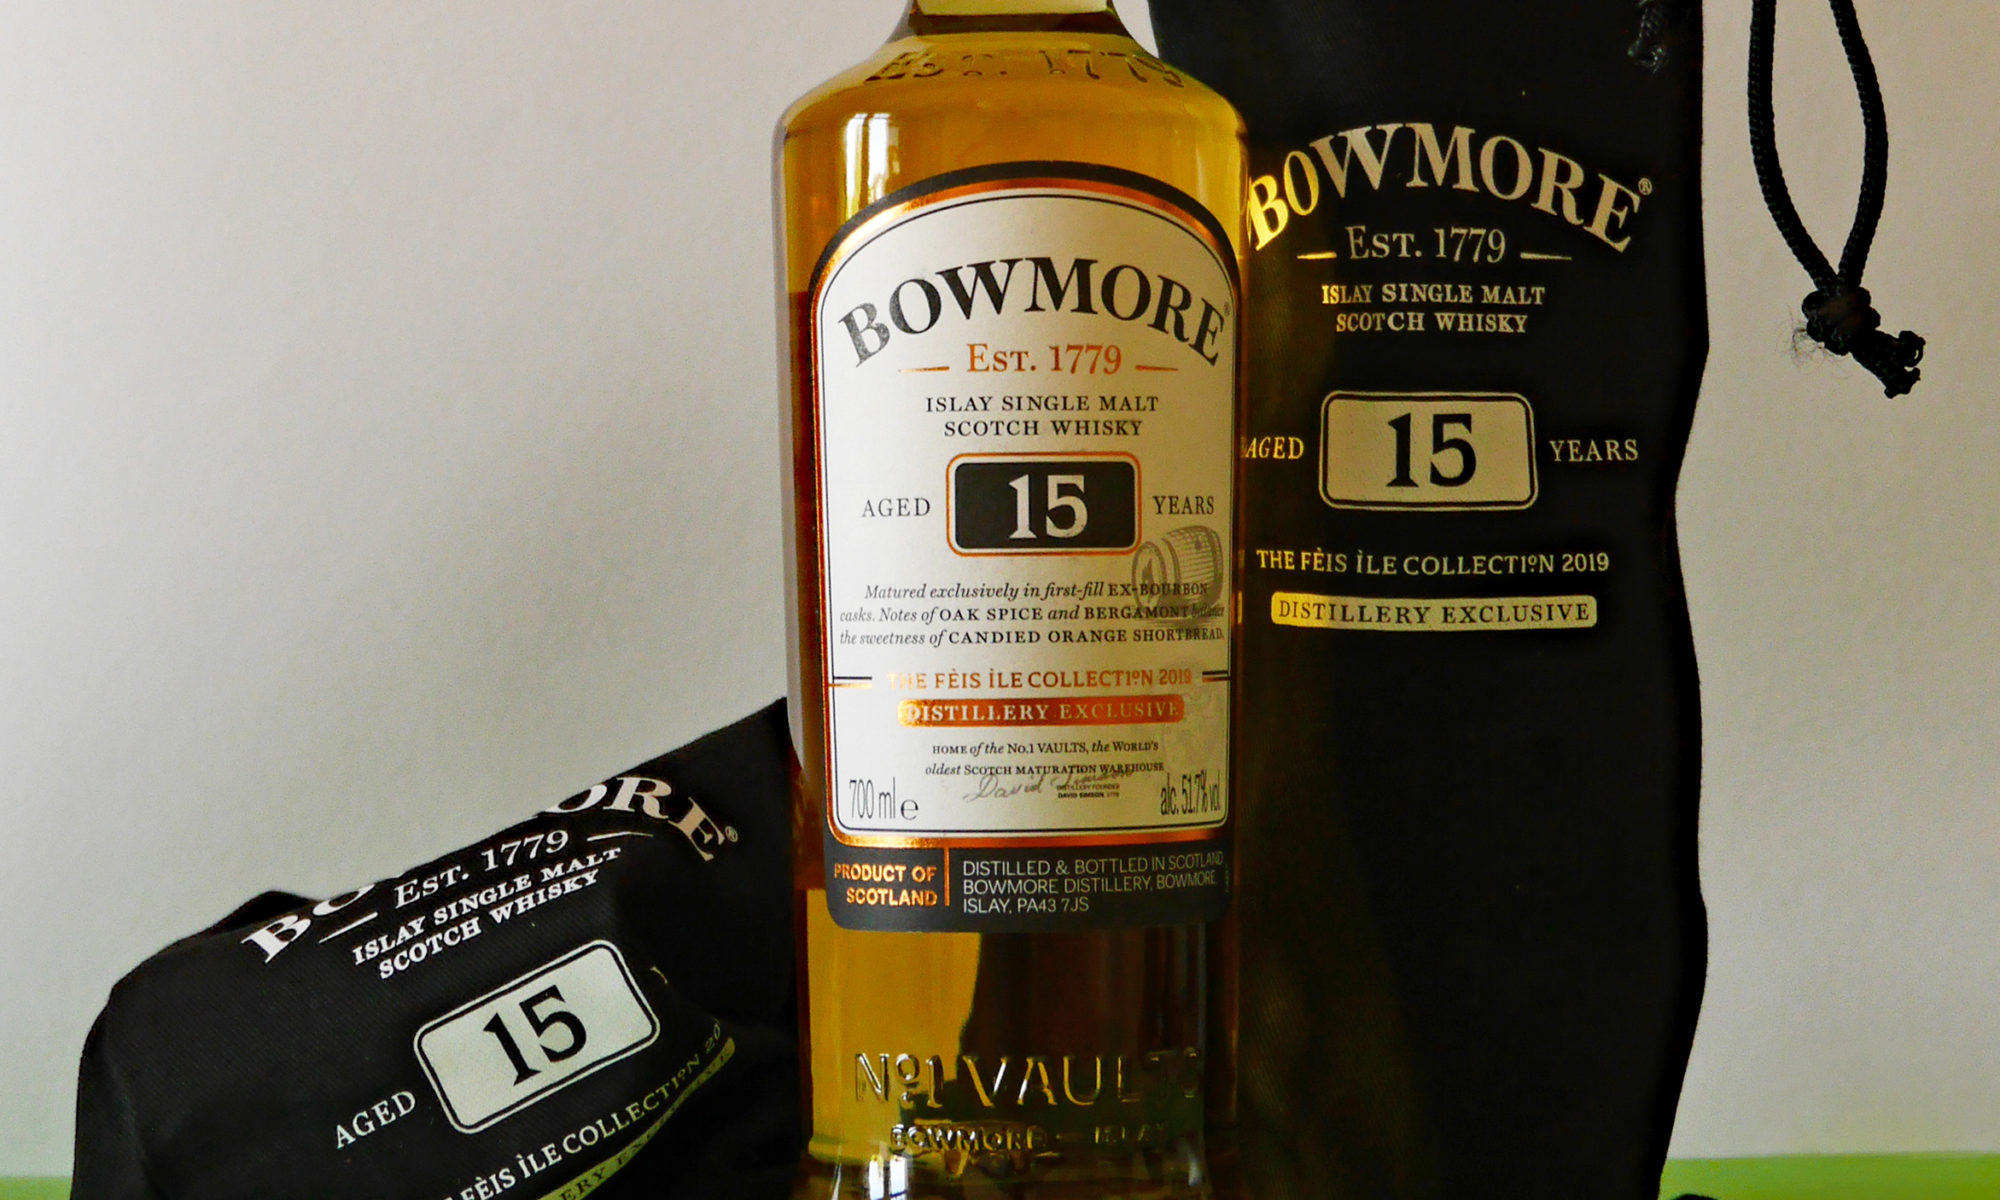 Bowmore 15 Years Feis Ile 2019